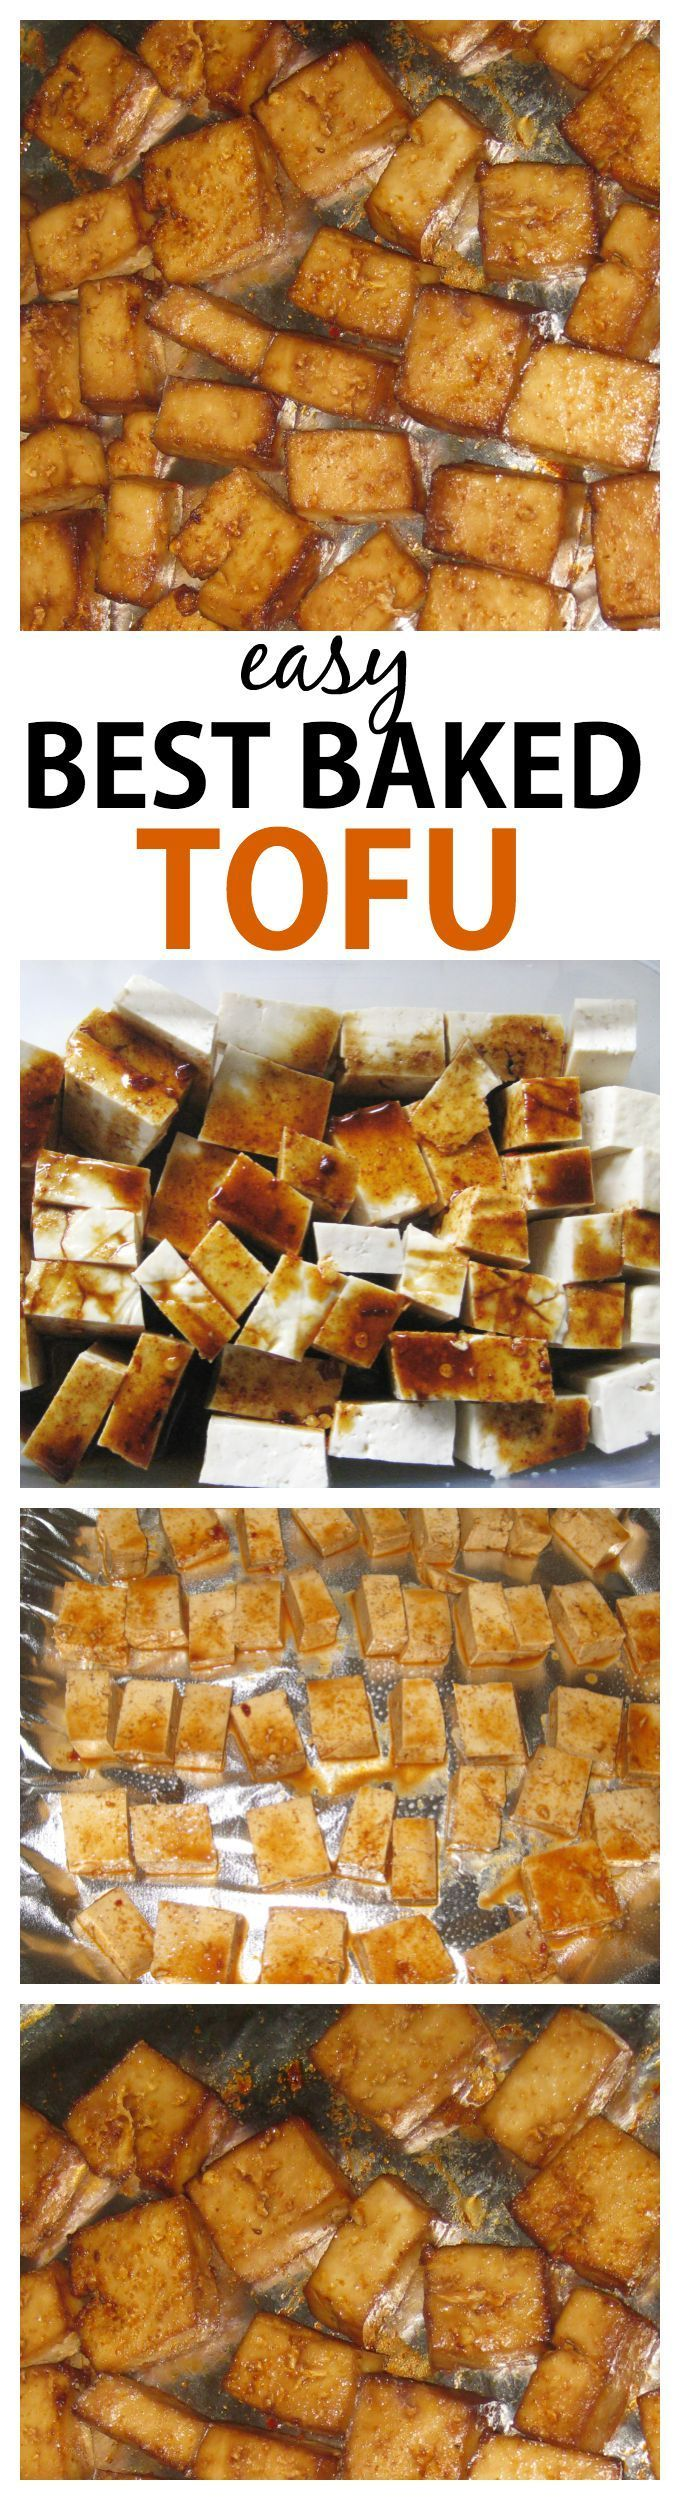 Hands down, the best (and easiest!) baked tofu ever- A delicious marinade and cooking method makes it an absolute hit- Vegan, gluten free and very low carb!-thebigmansworld.com #tofu #vegetarian #delicious